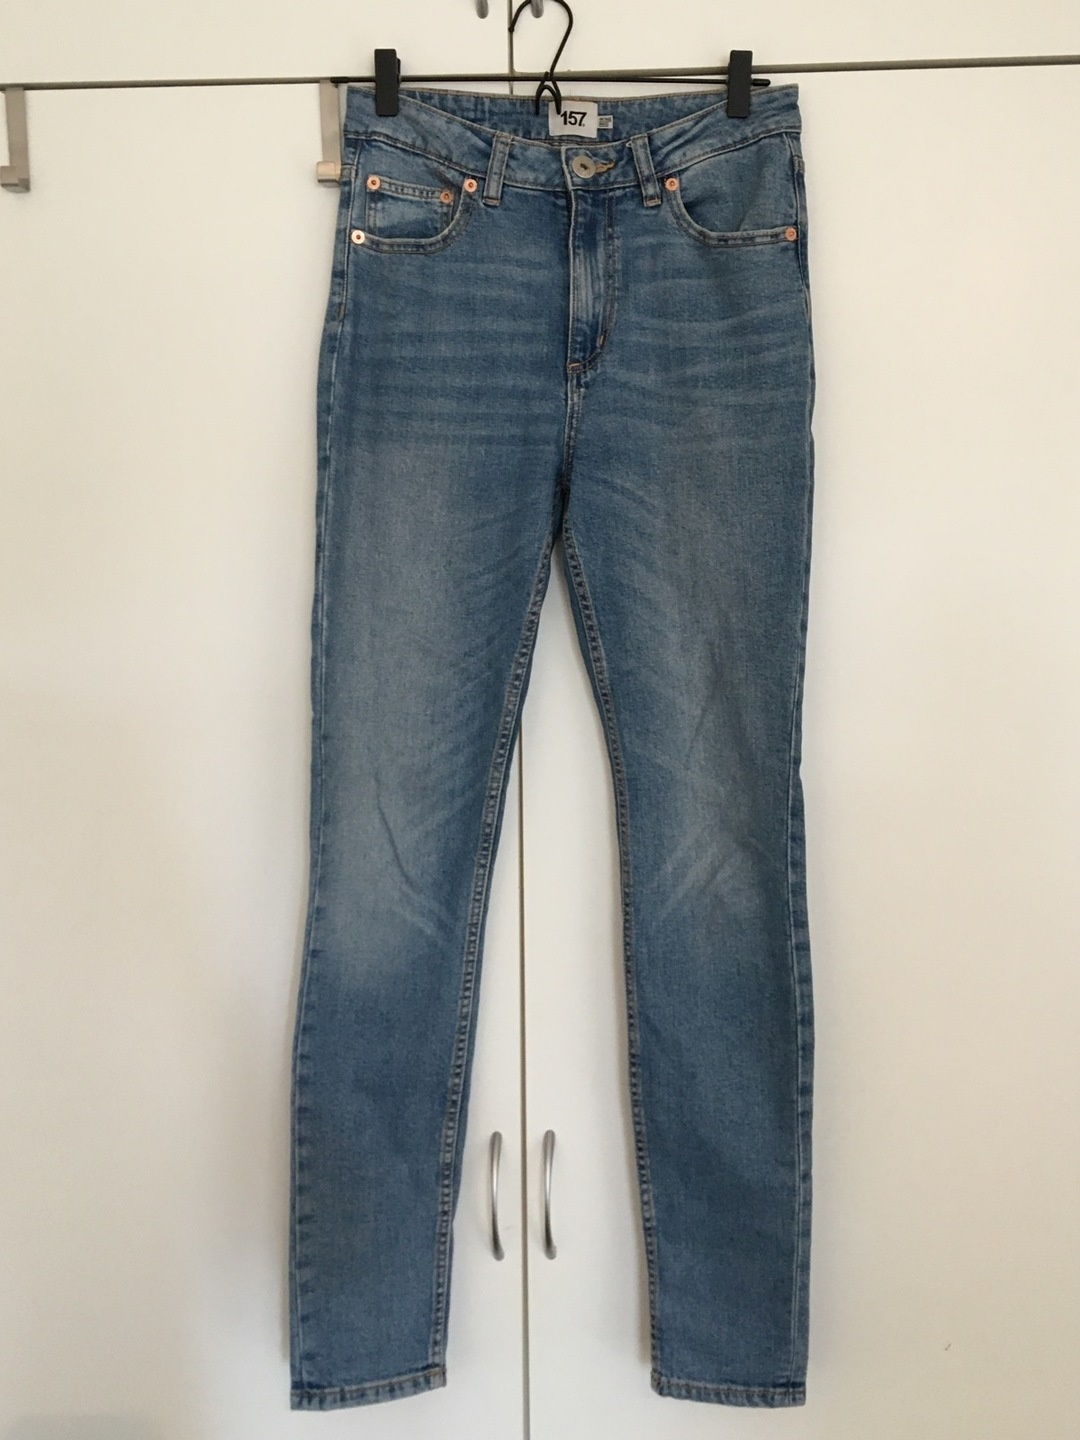 Women's trousers & jeans - THE157STORE photo 1